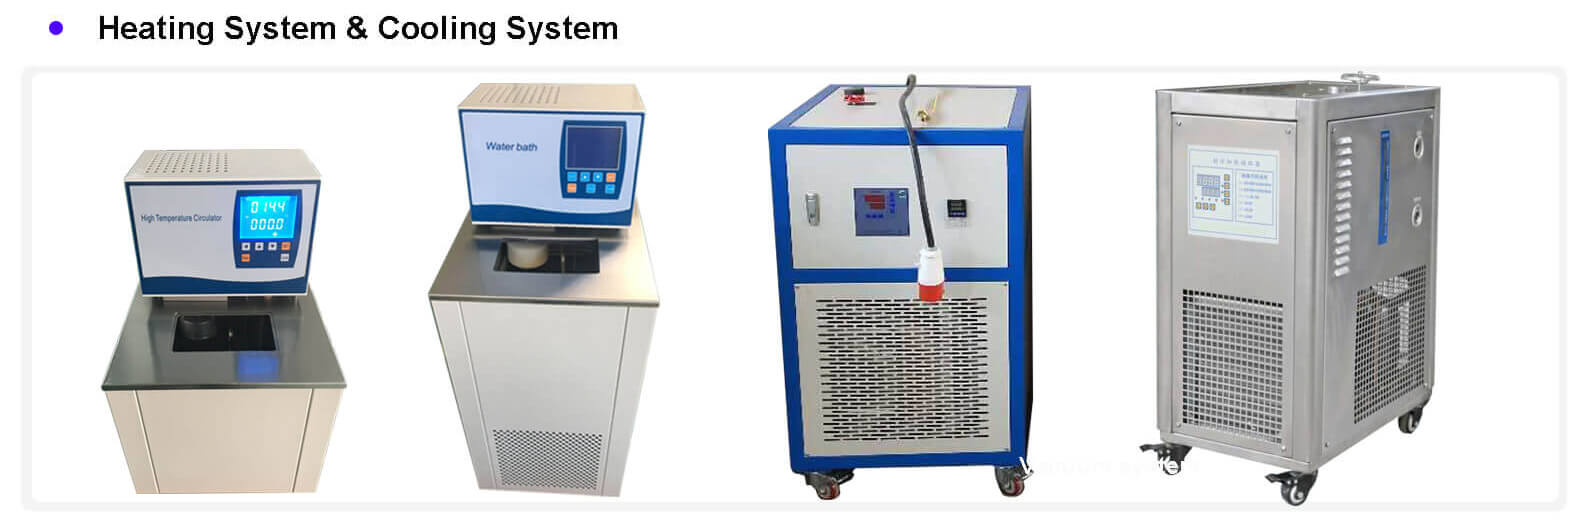 molecular distillation equipment temperature control system